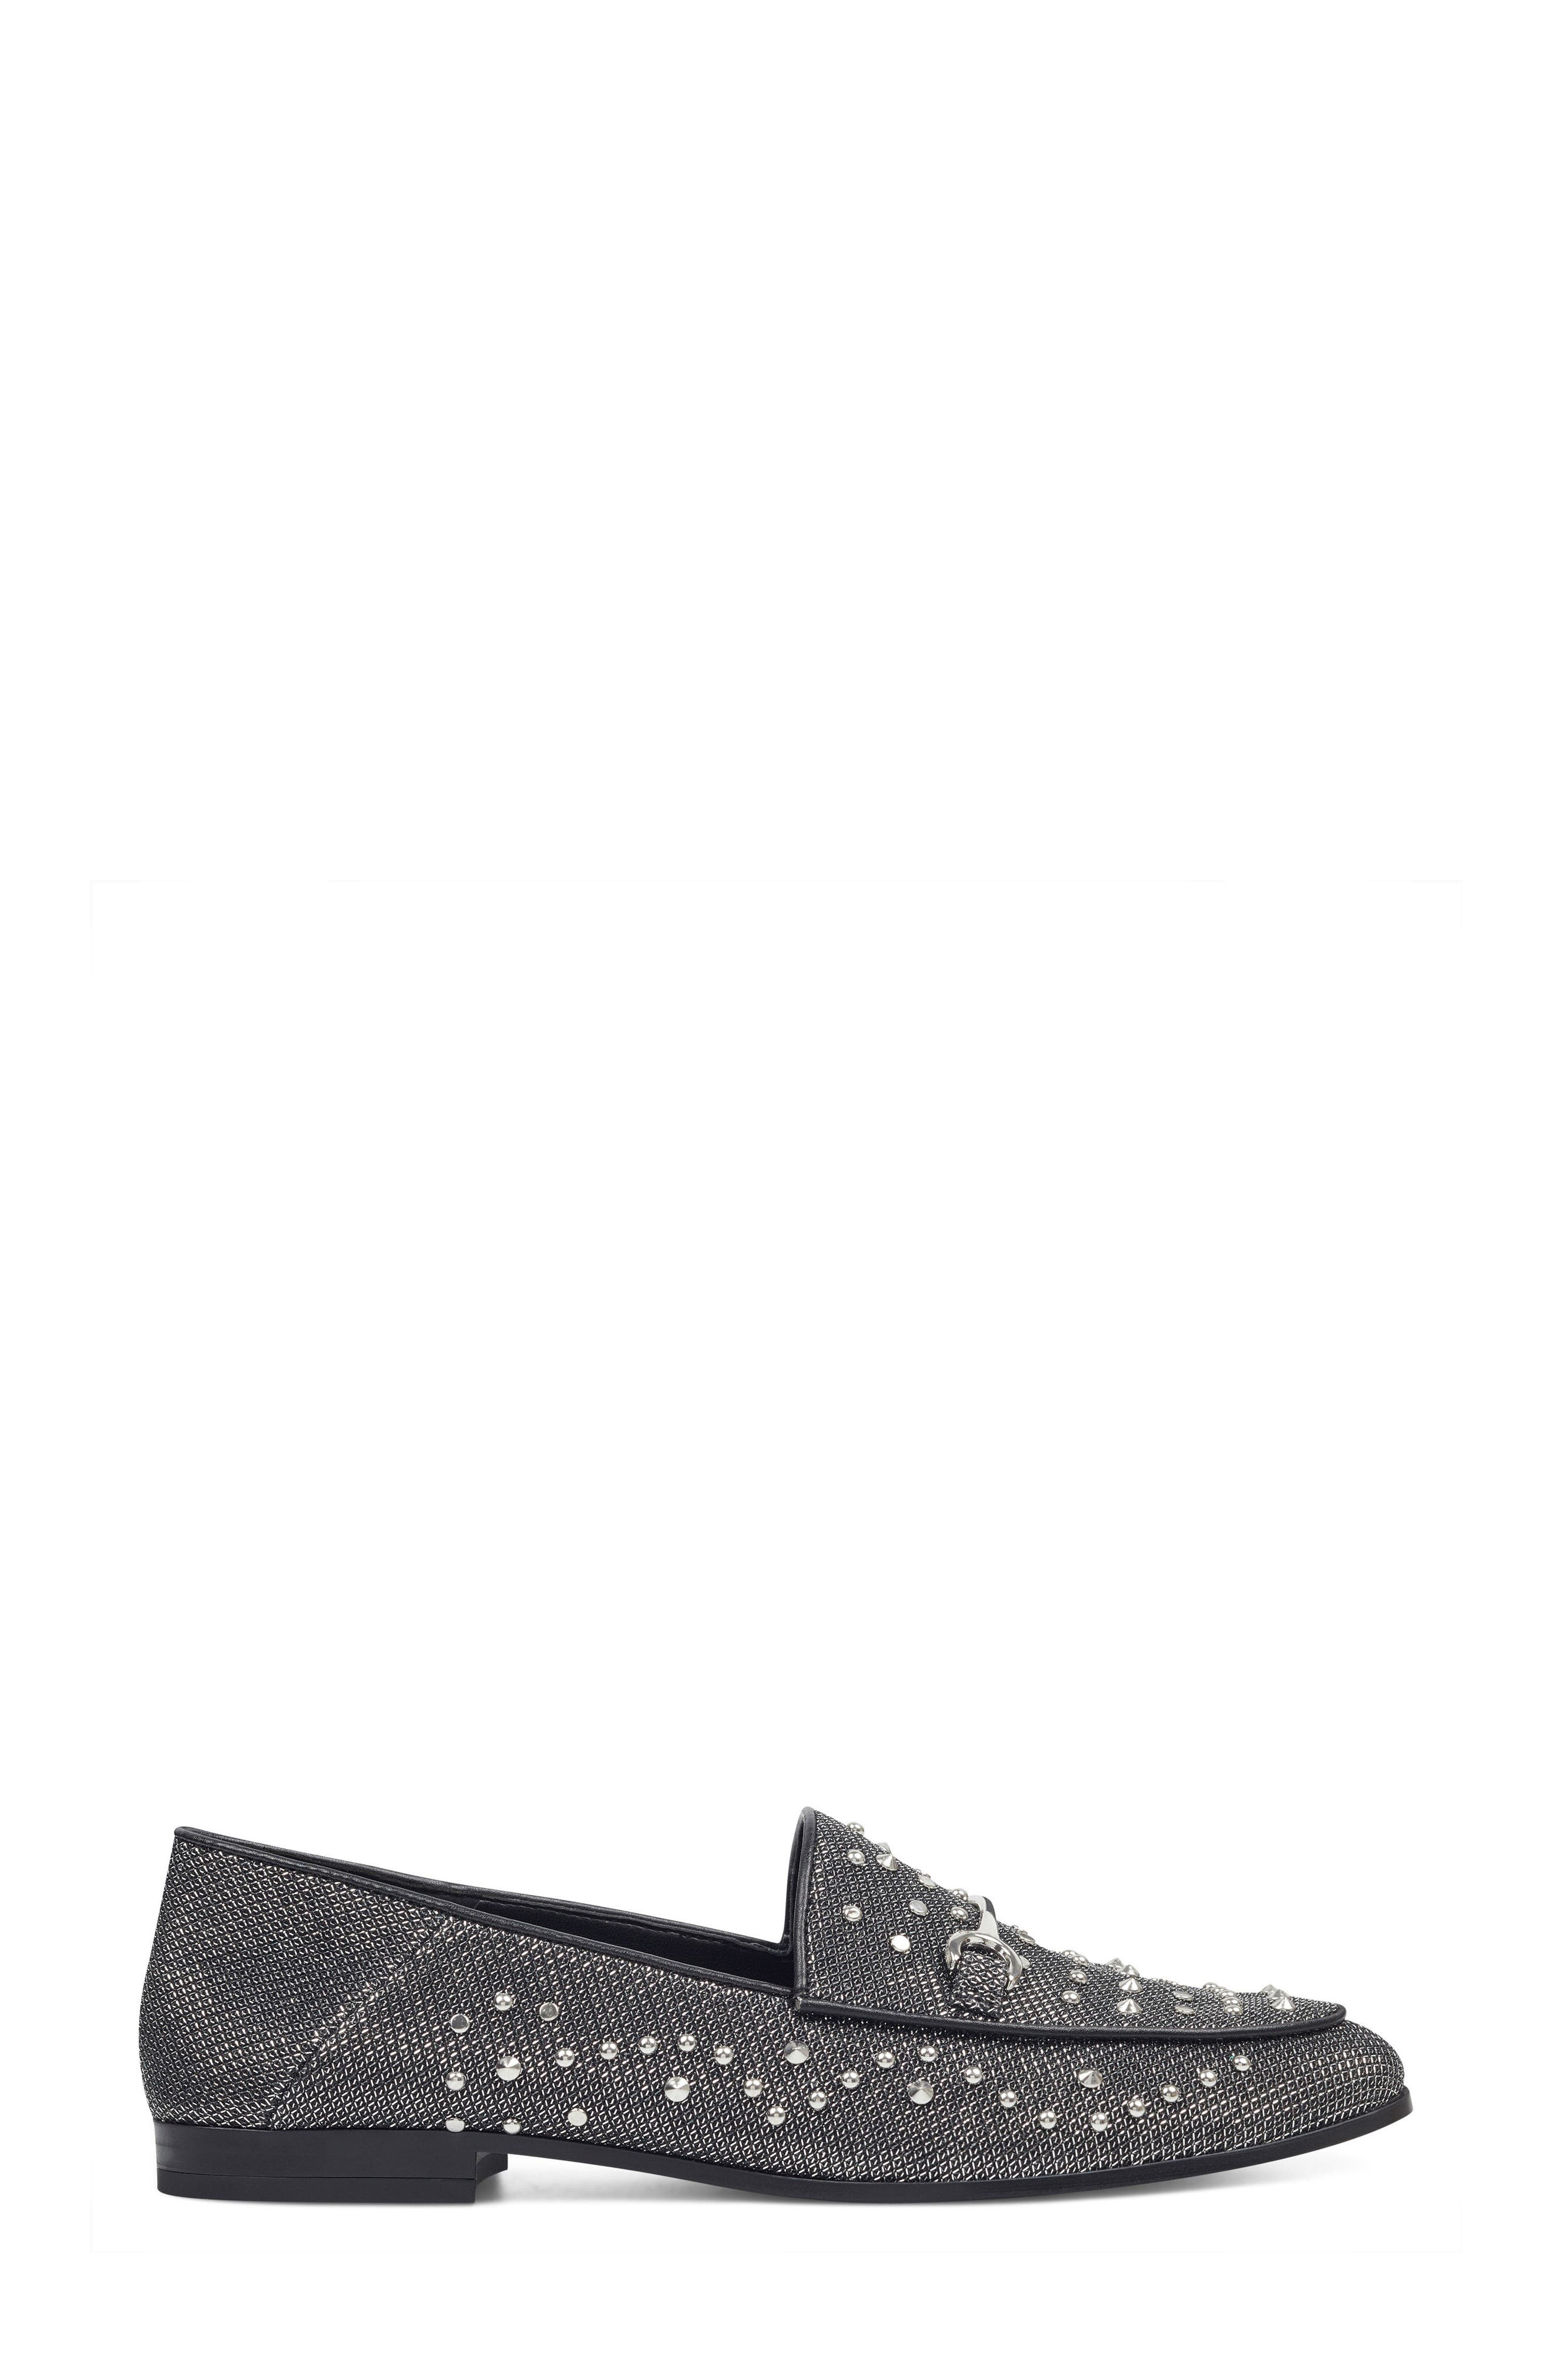 Westoy Studded Loafer,                             Alternate thumbnail 3, color,                             001